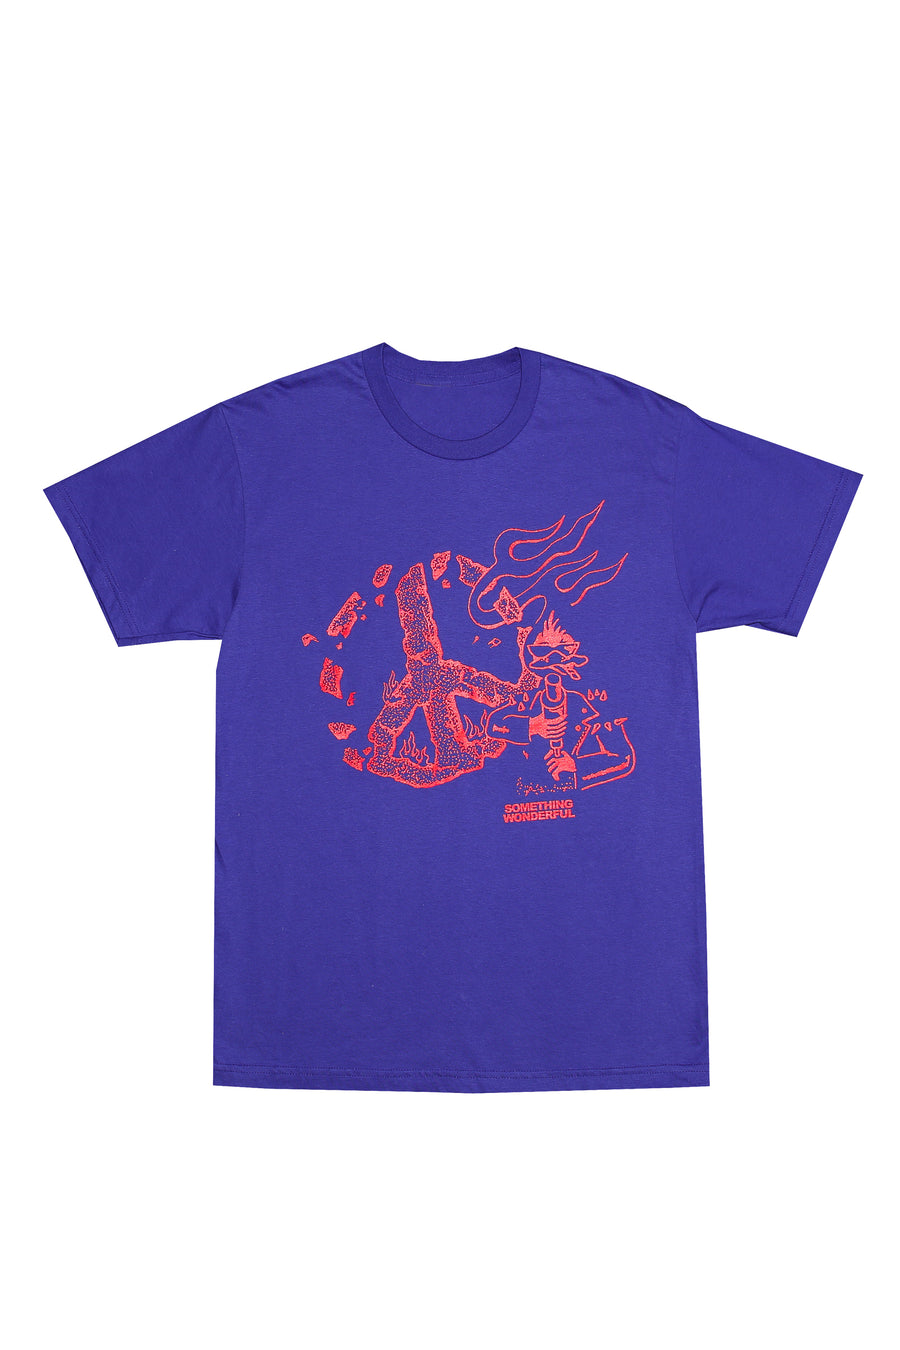 PEACE T-SHIRT COBALT